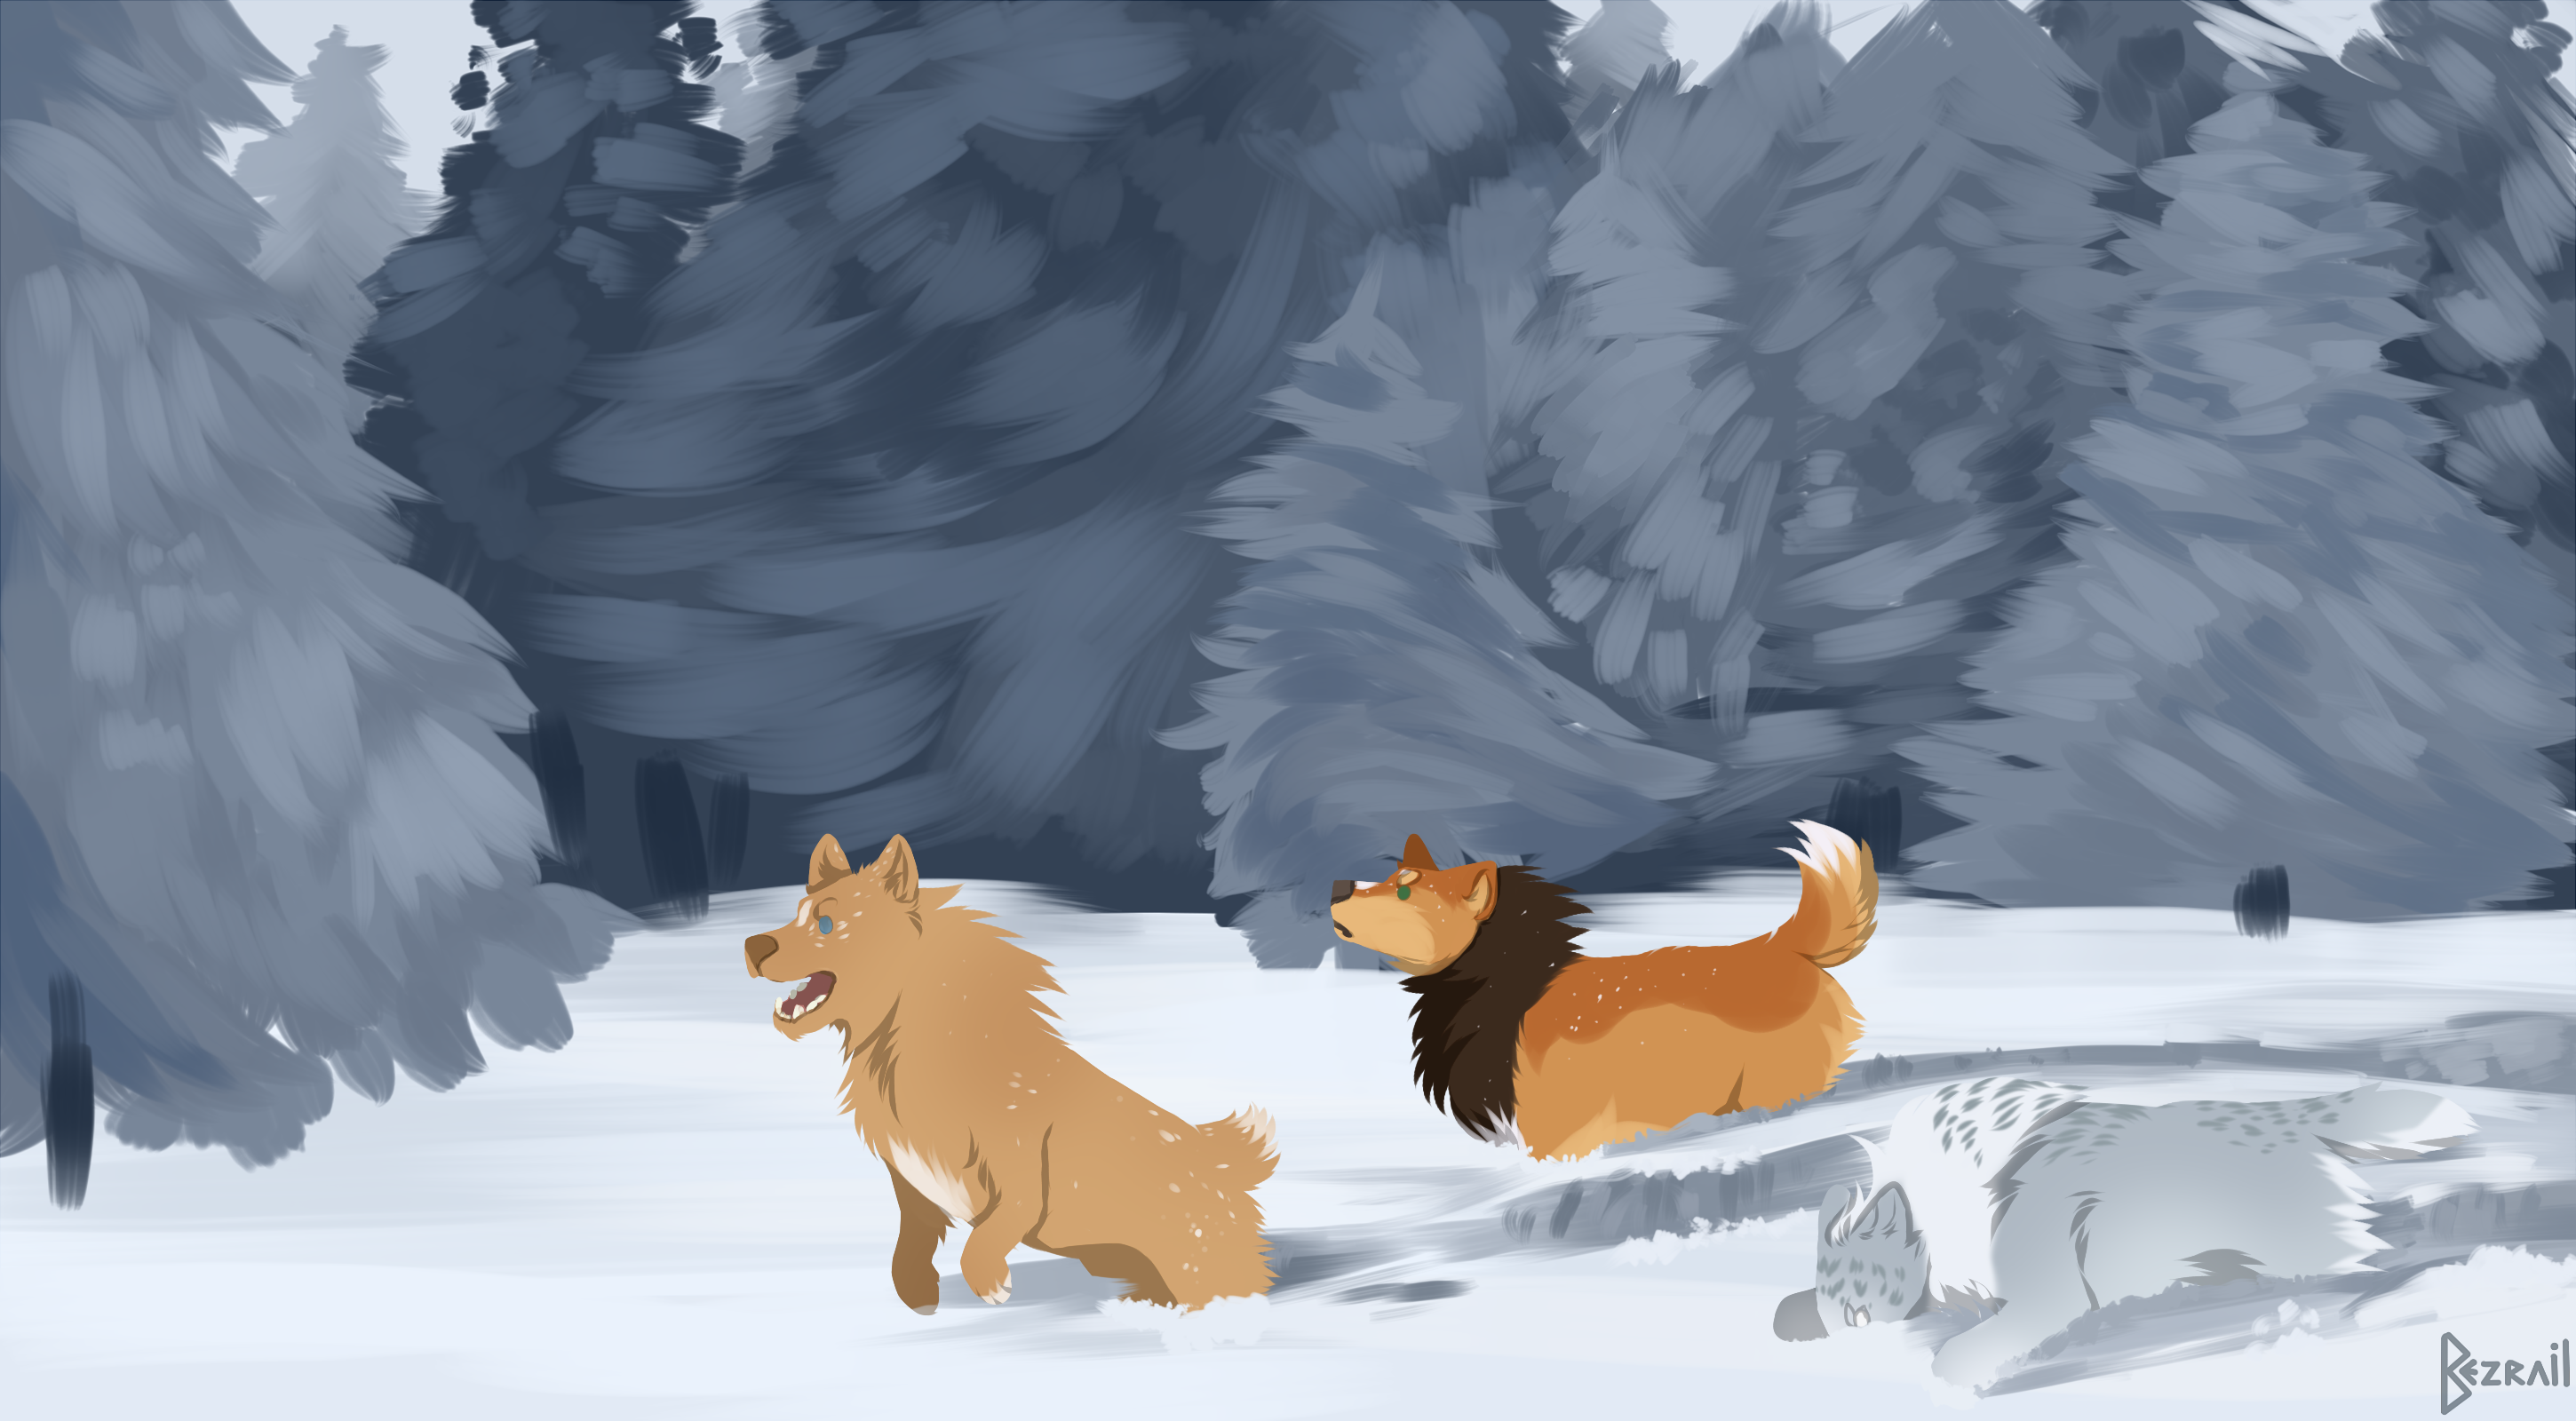 Stuck in the snow - Roll 3 for Furreon by Bezrail